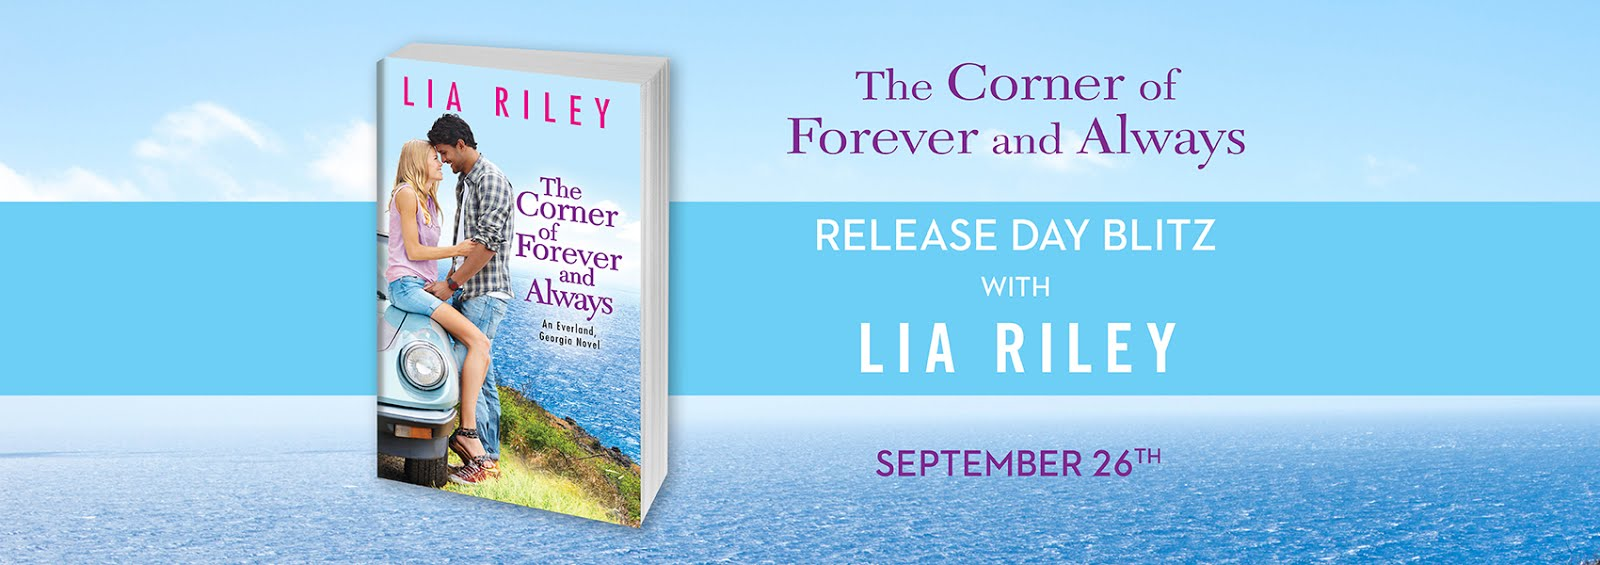 The Corner of Forever and Always Release Blitz